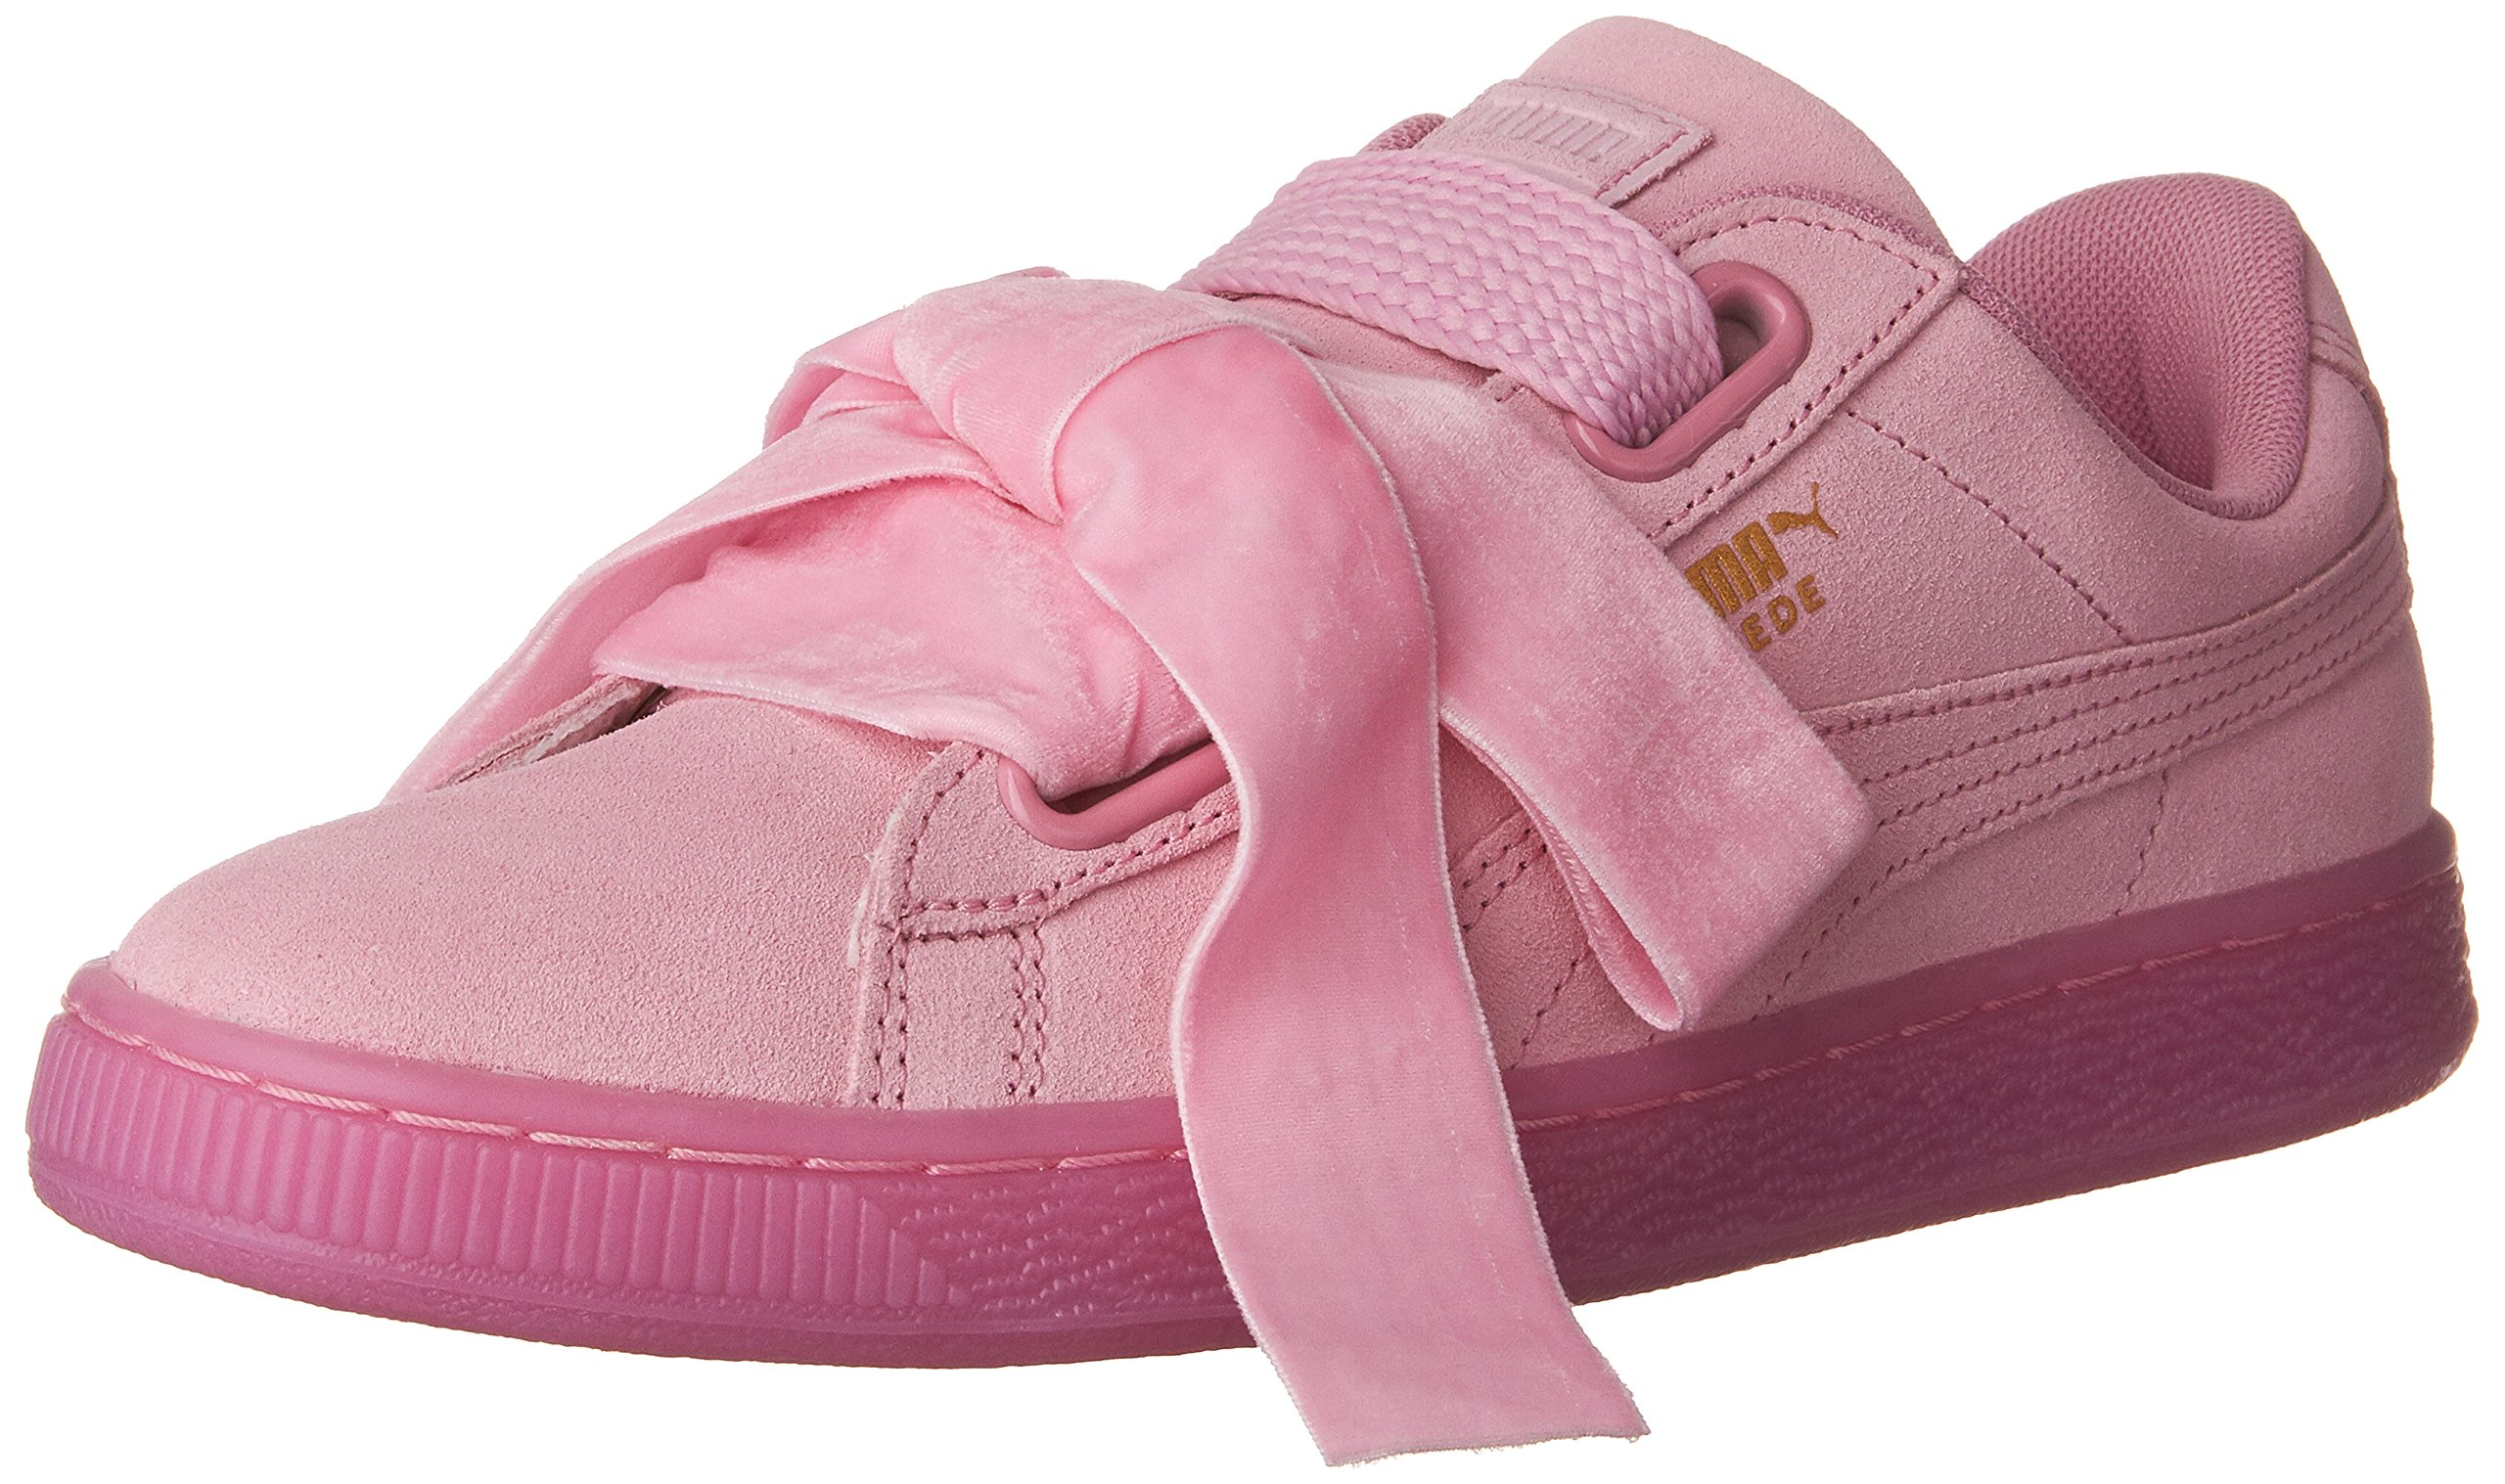 sports shoes a4cb0 65363 PUMA Women's Suede Heart Reset WN's Fashion Sneaker, Prism Pink, 9 M US